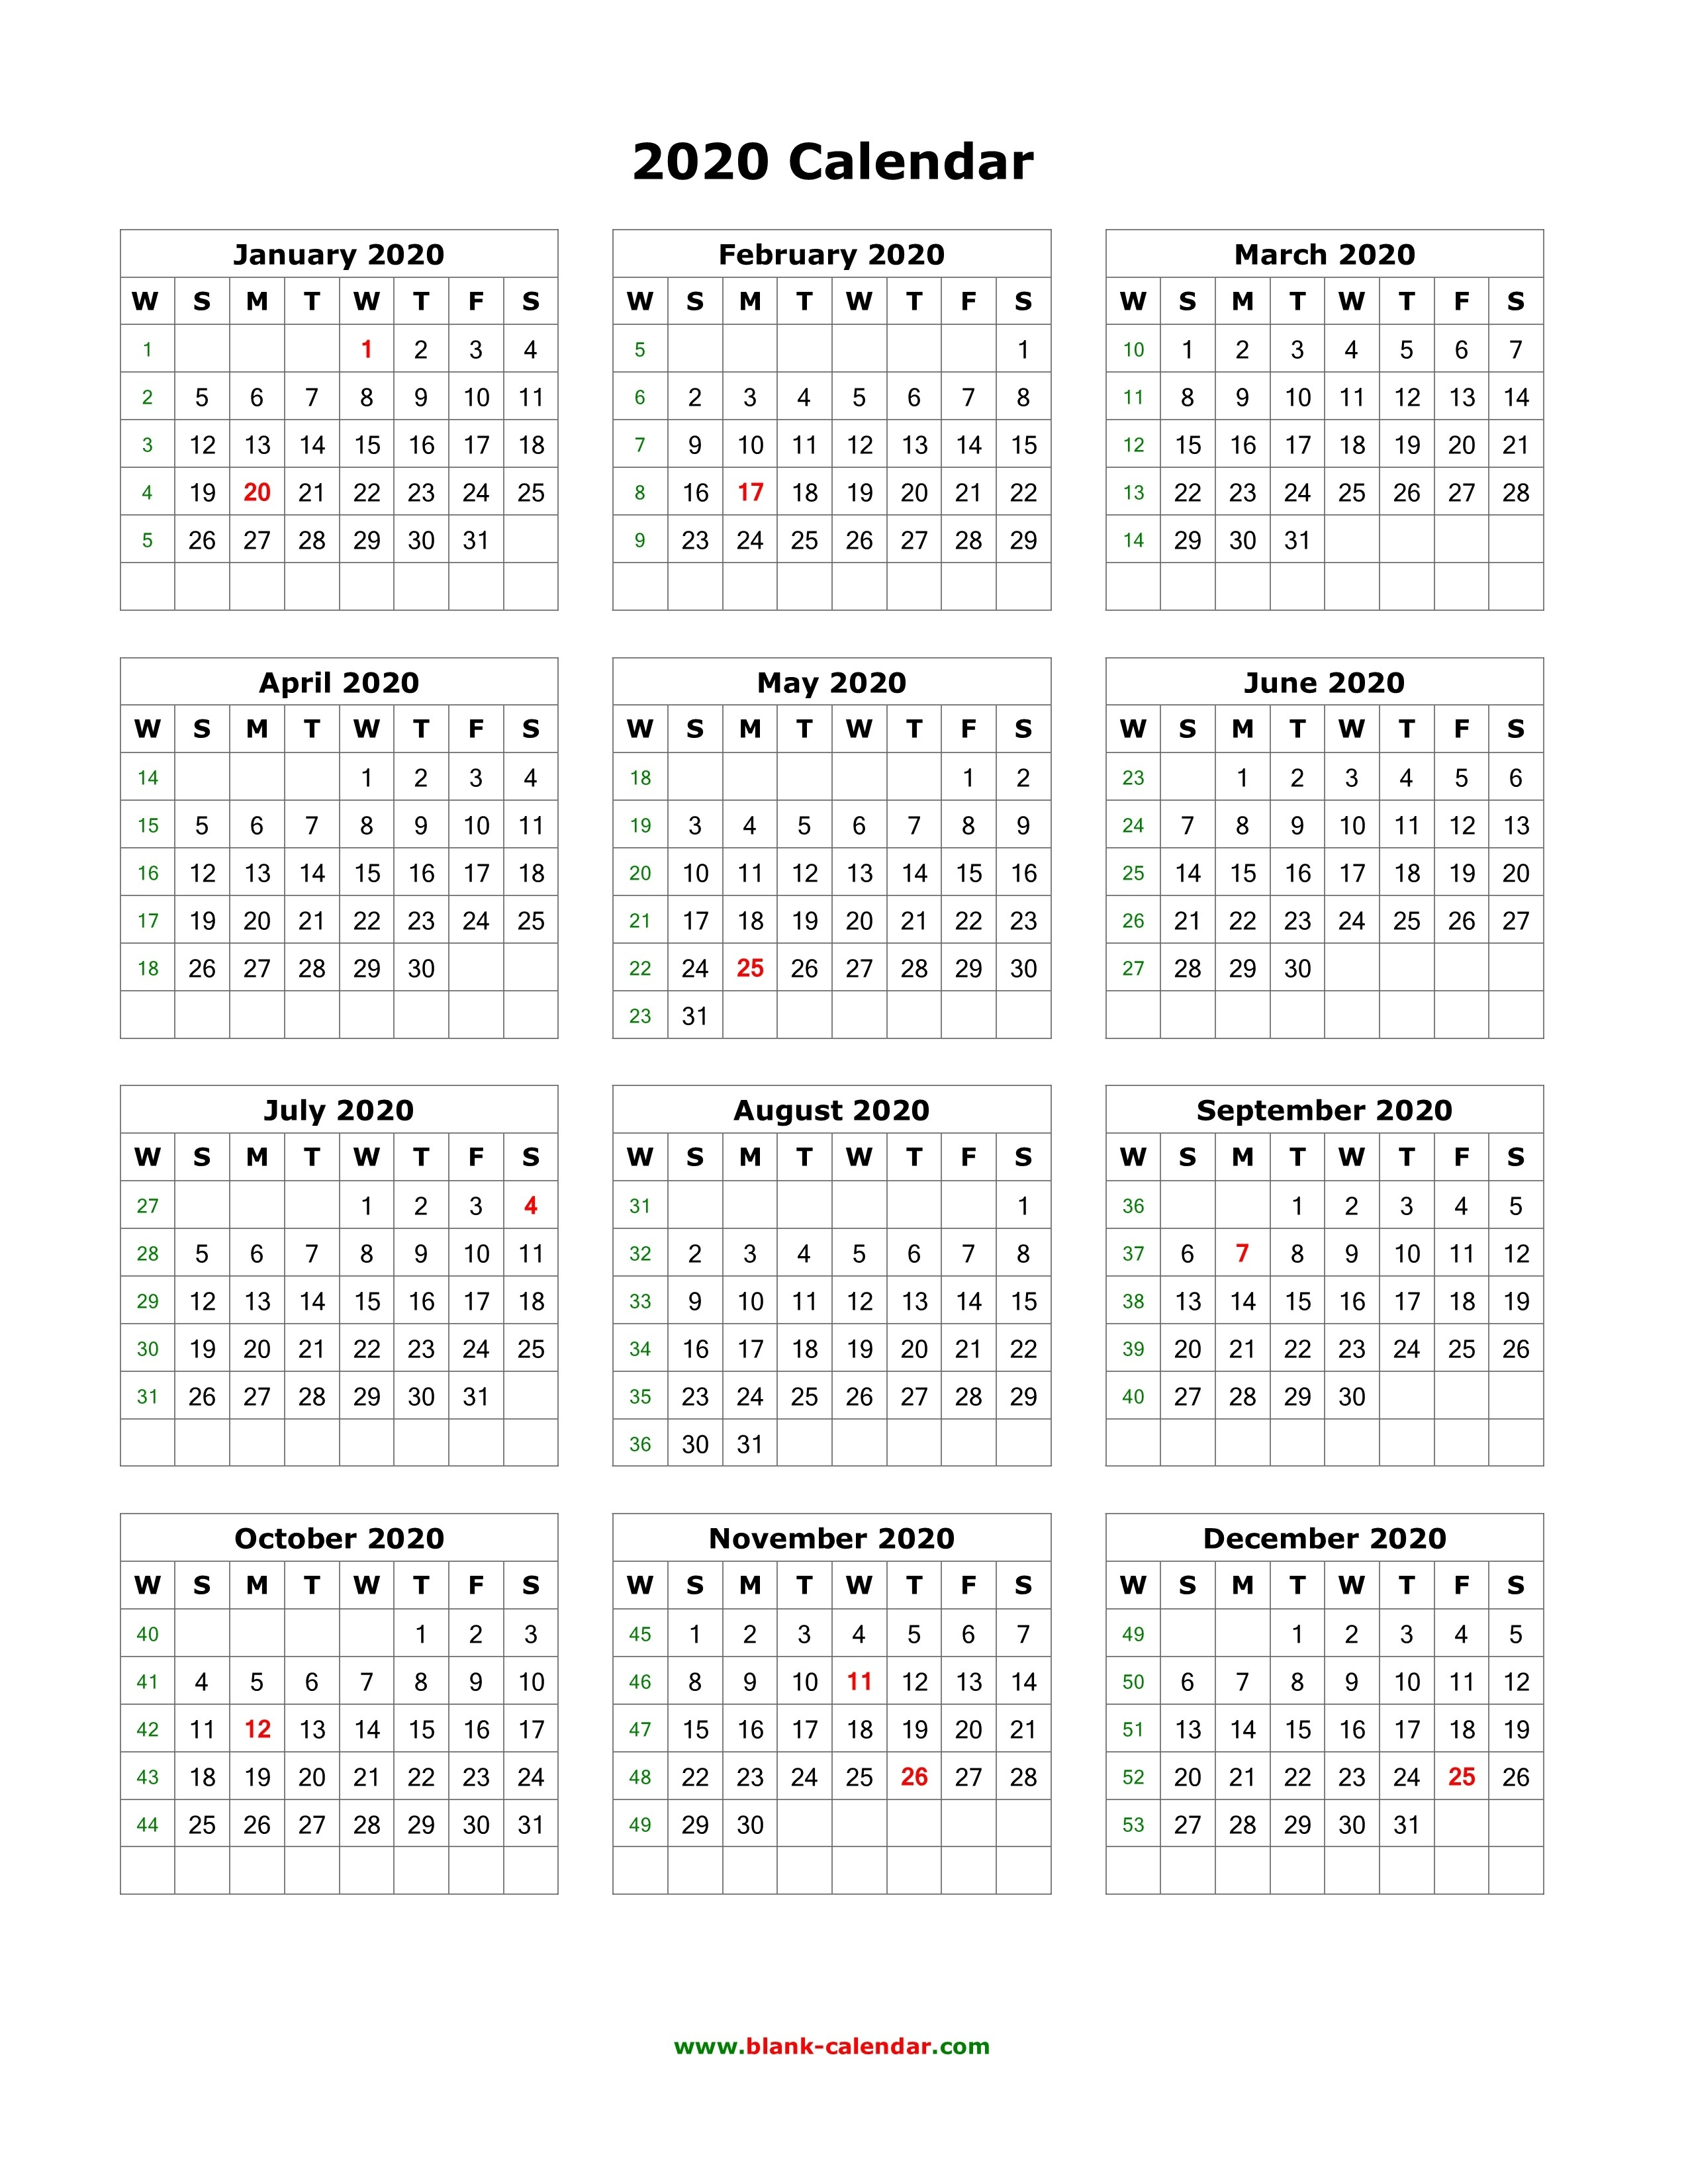 Download Blank Calendar 2020 (12 Months On One Page, Vertical)-Blank Printable Calandes With 2 Months On A Page Year 2020